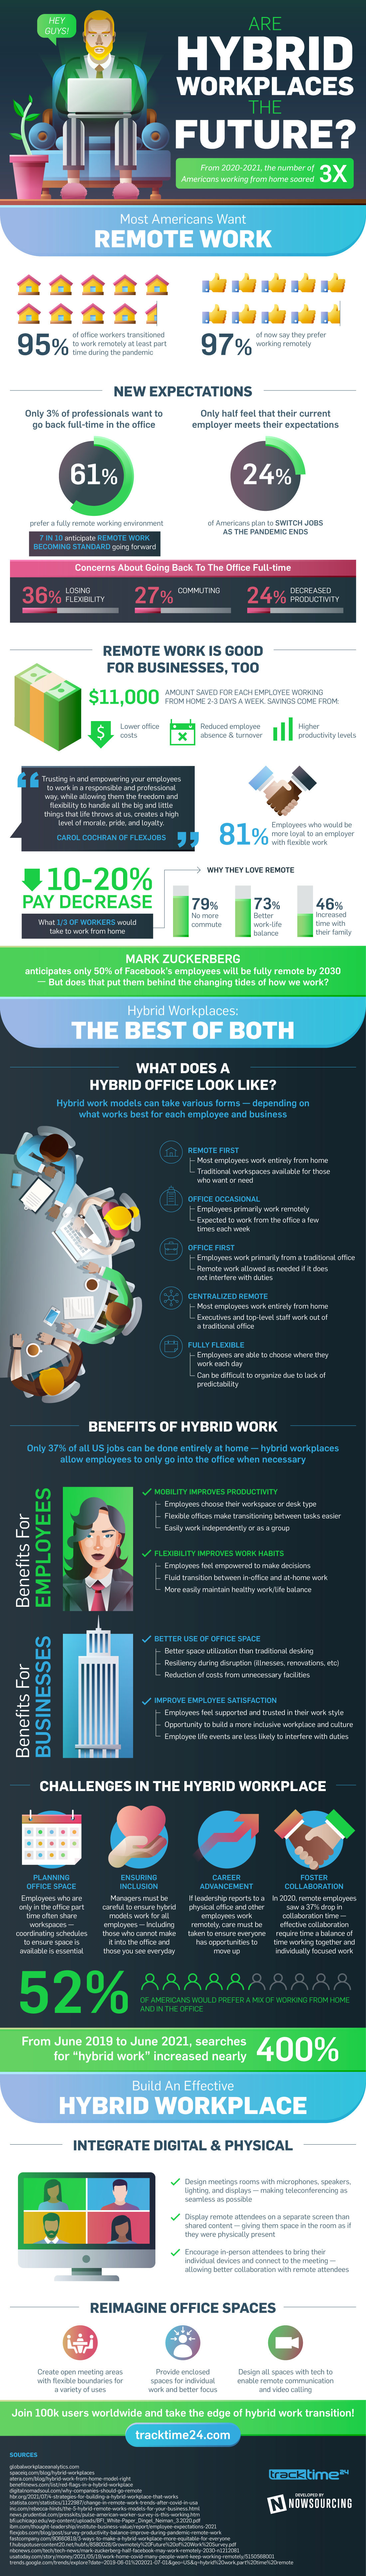 Is the Hybrid Workplace Here to Stay? [Infographic]